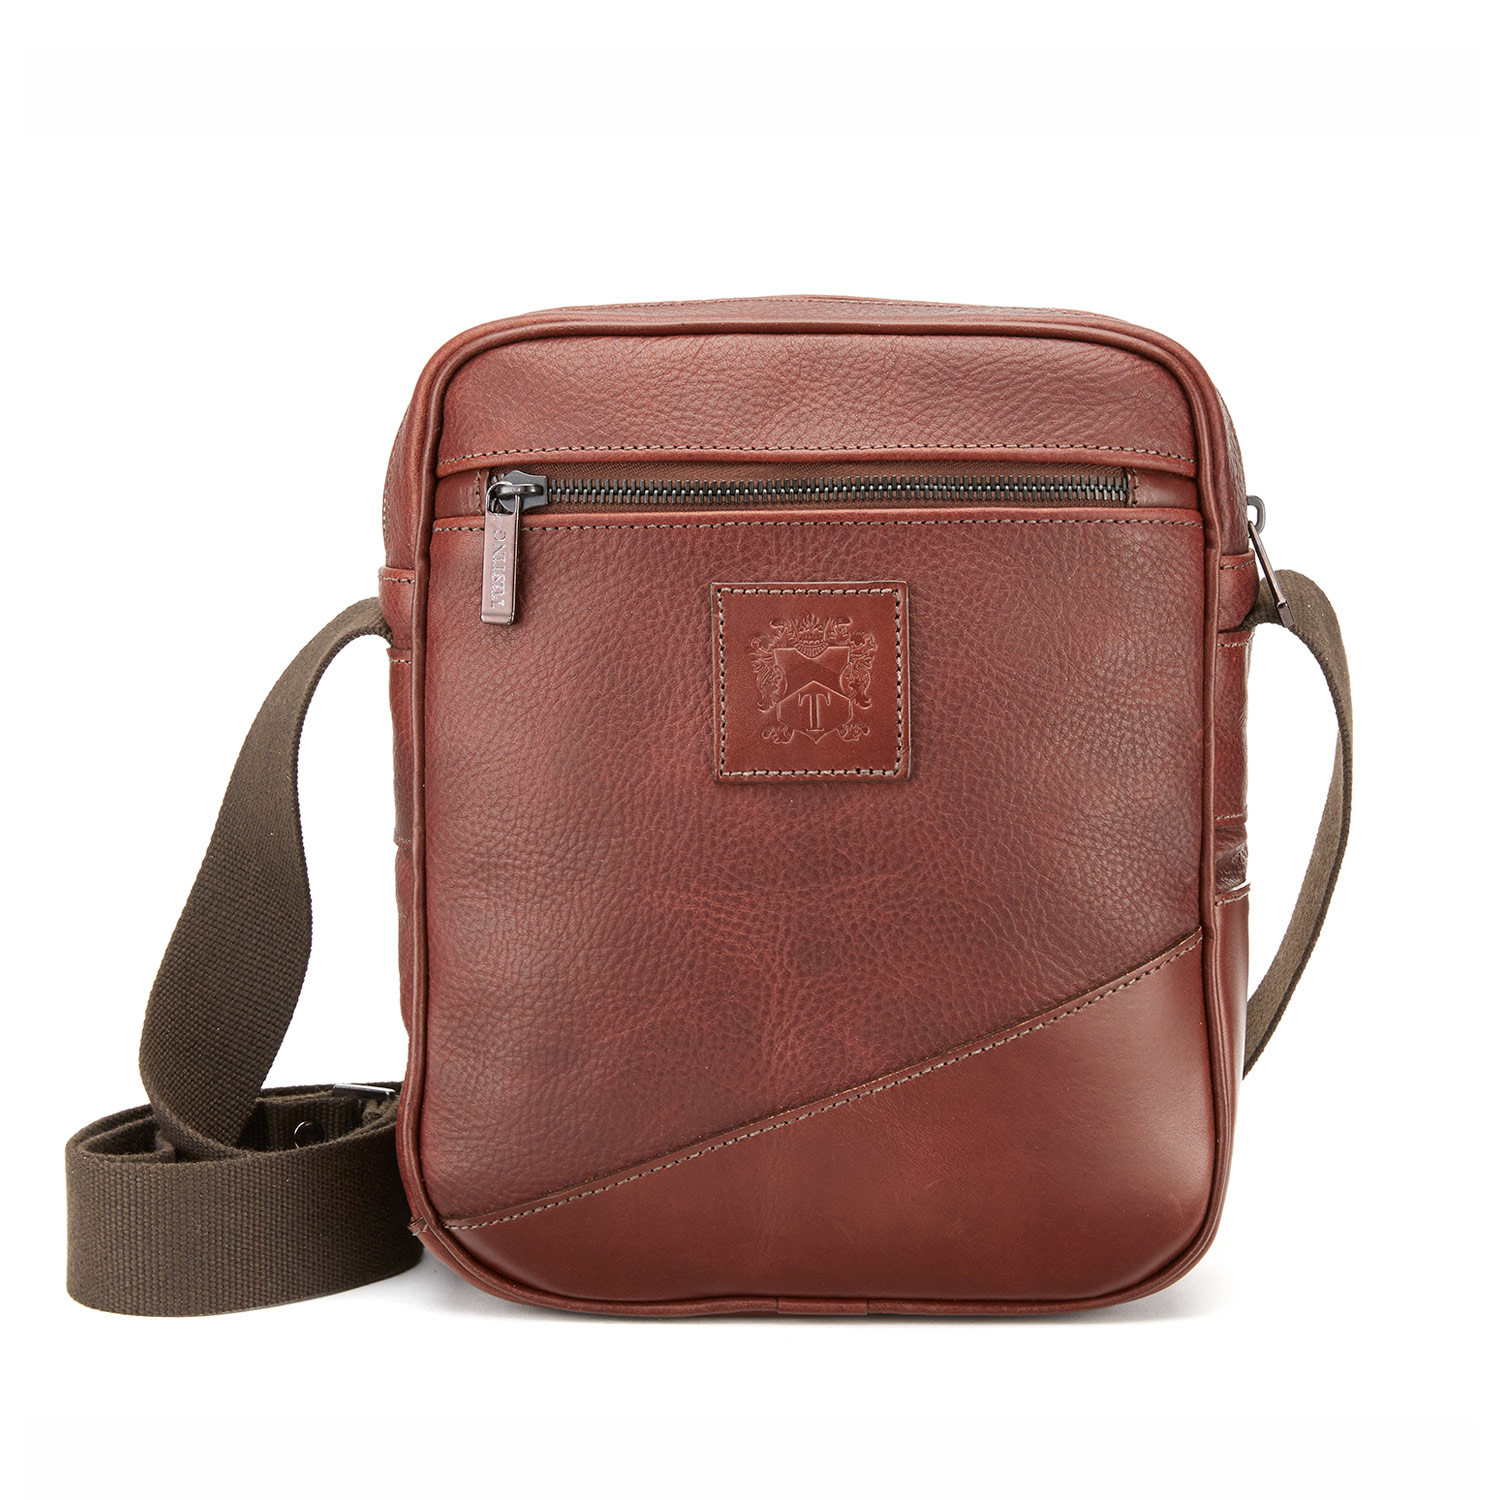 The Tusting Nimrod Mini Messenger Bag for Men in Chestnut Brown Fully Veg-tanned leather. Made in England.